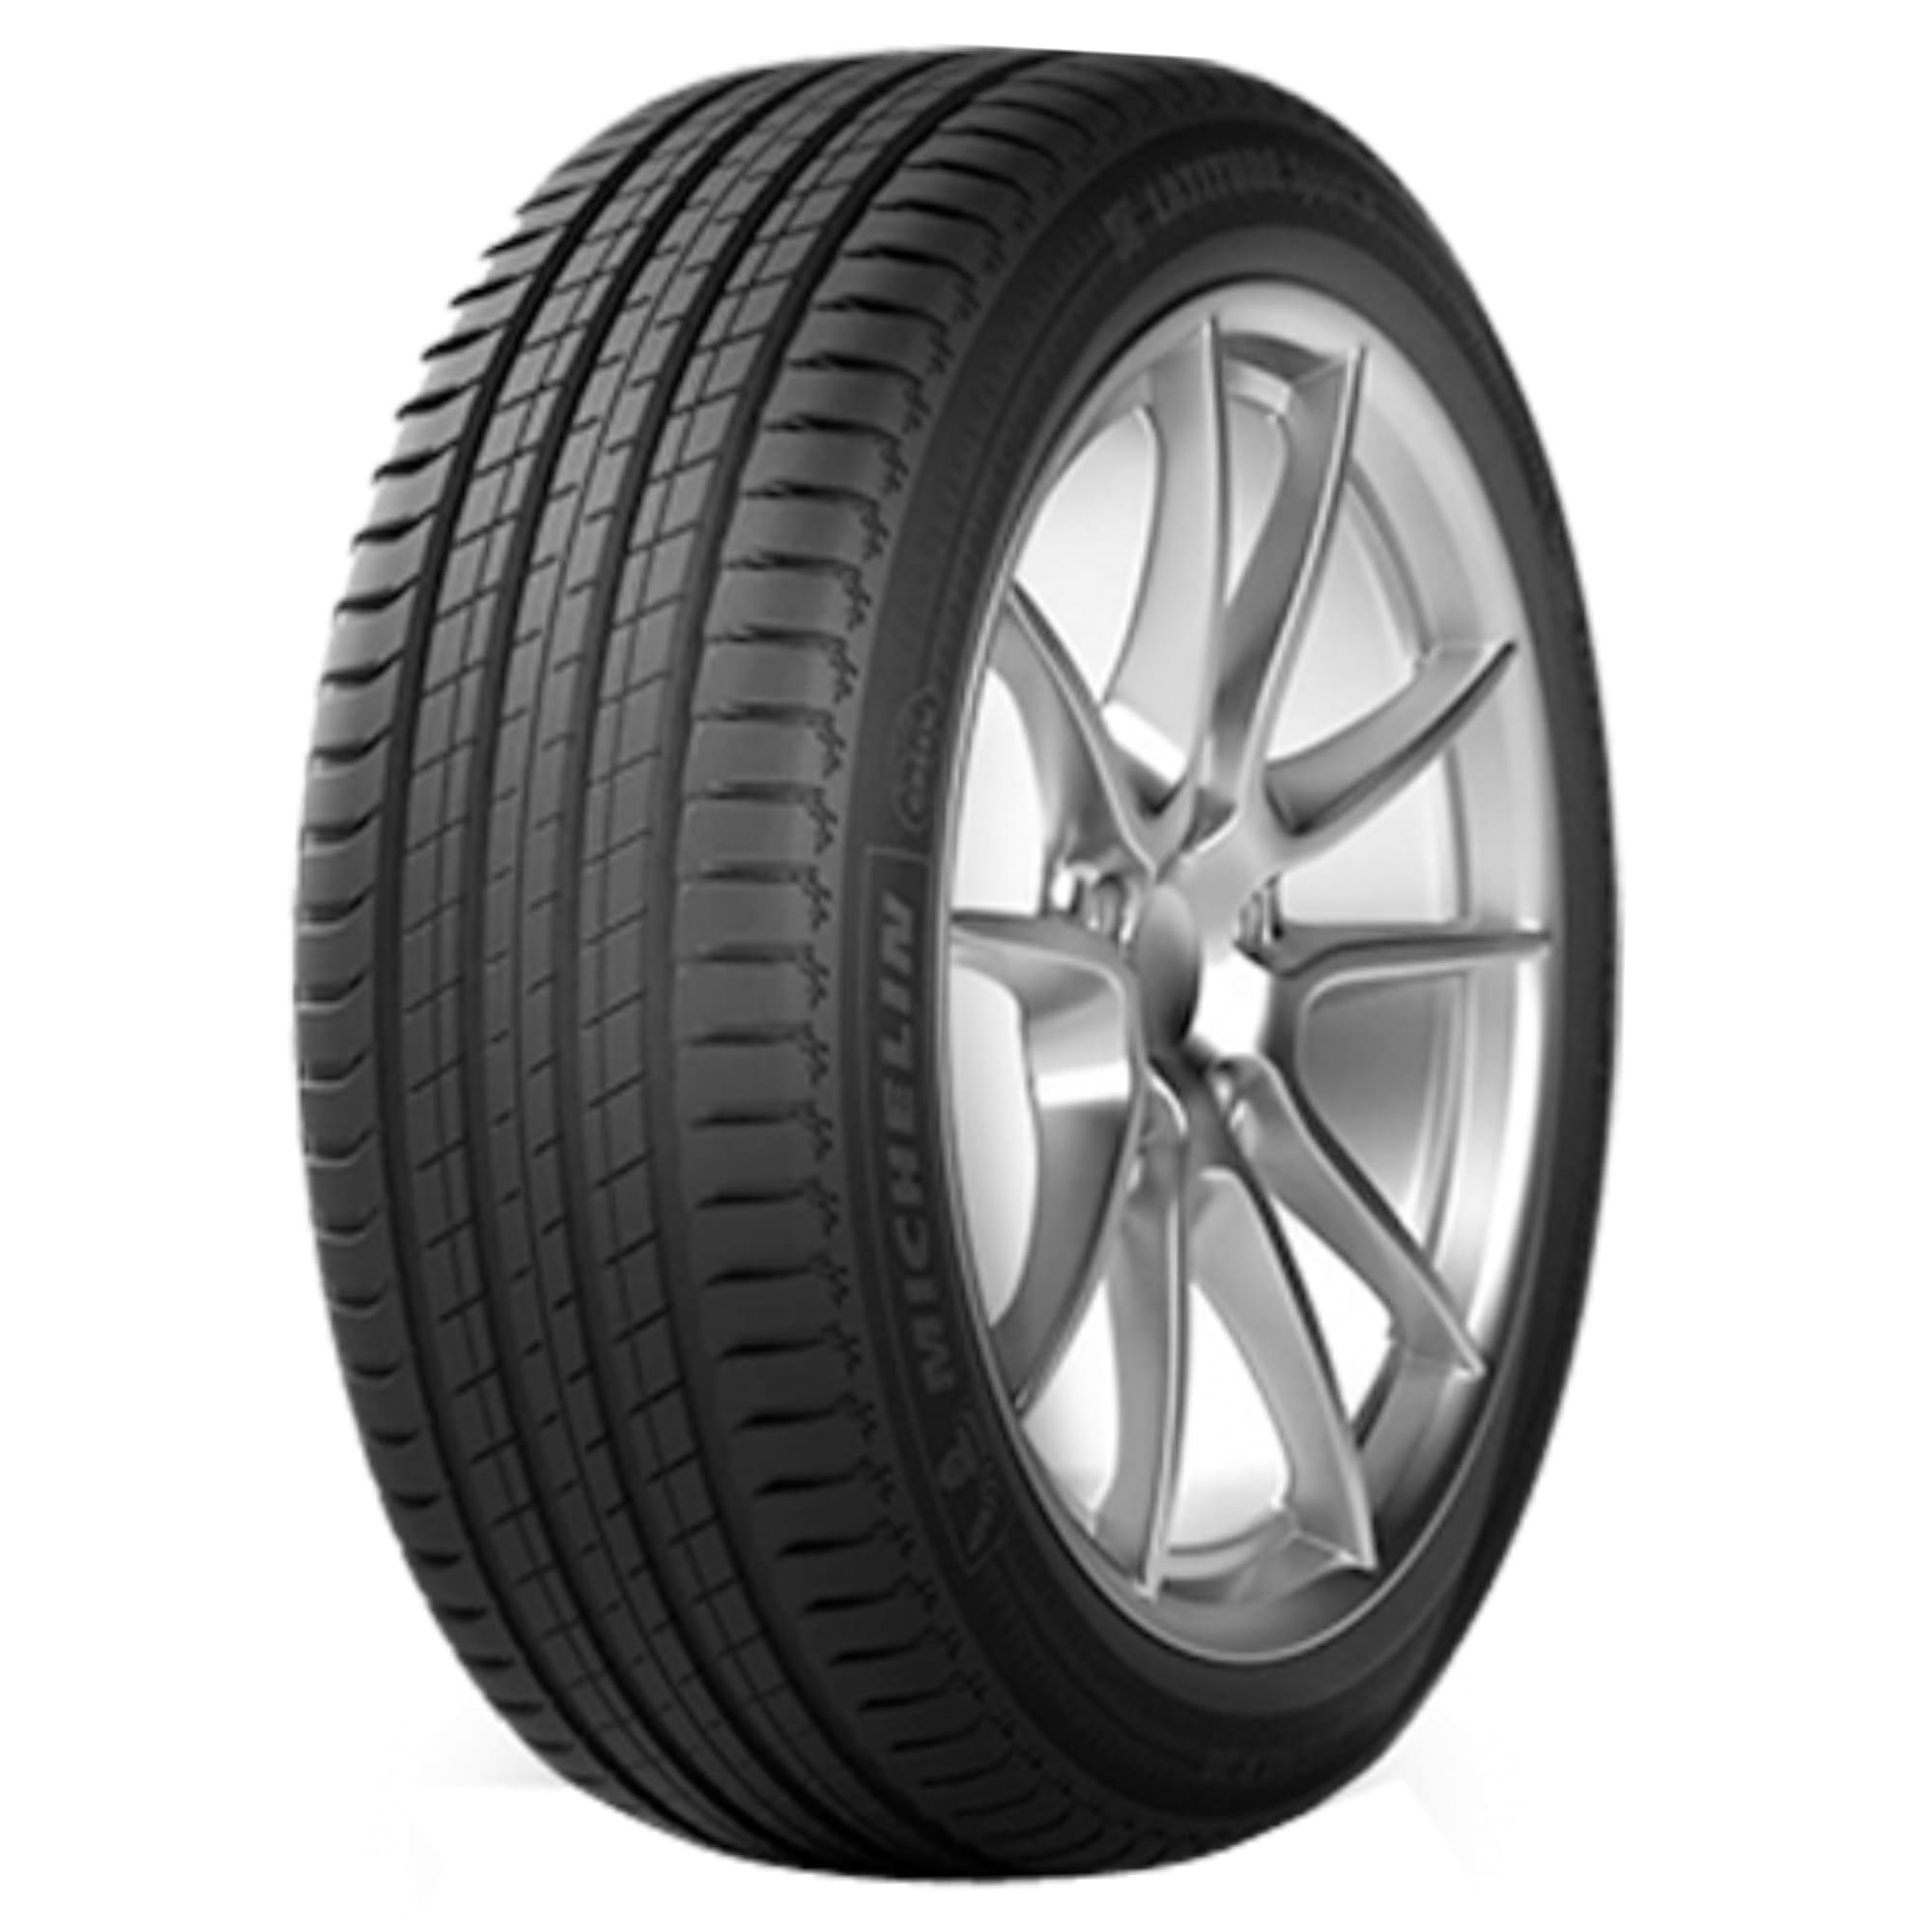 Neumaticos MICHELIN LATITUDE  SPORT 3 295/35 R21 107Y Mini Foto 1